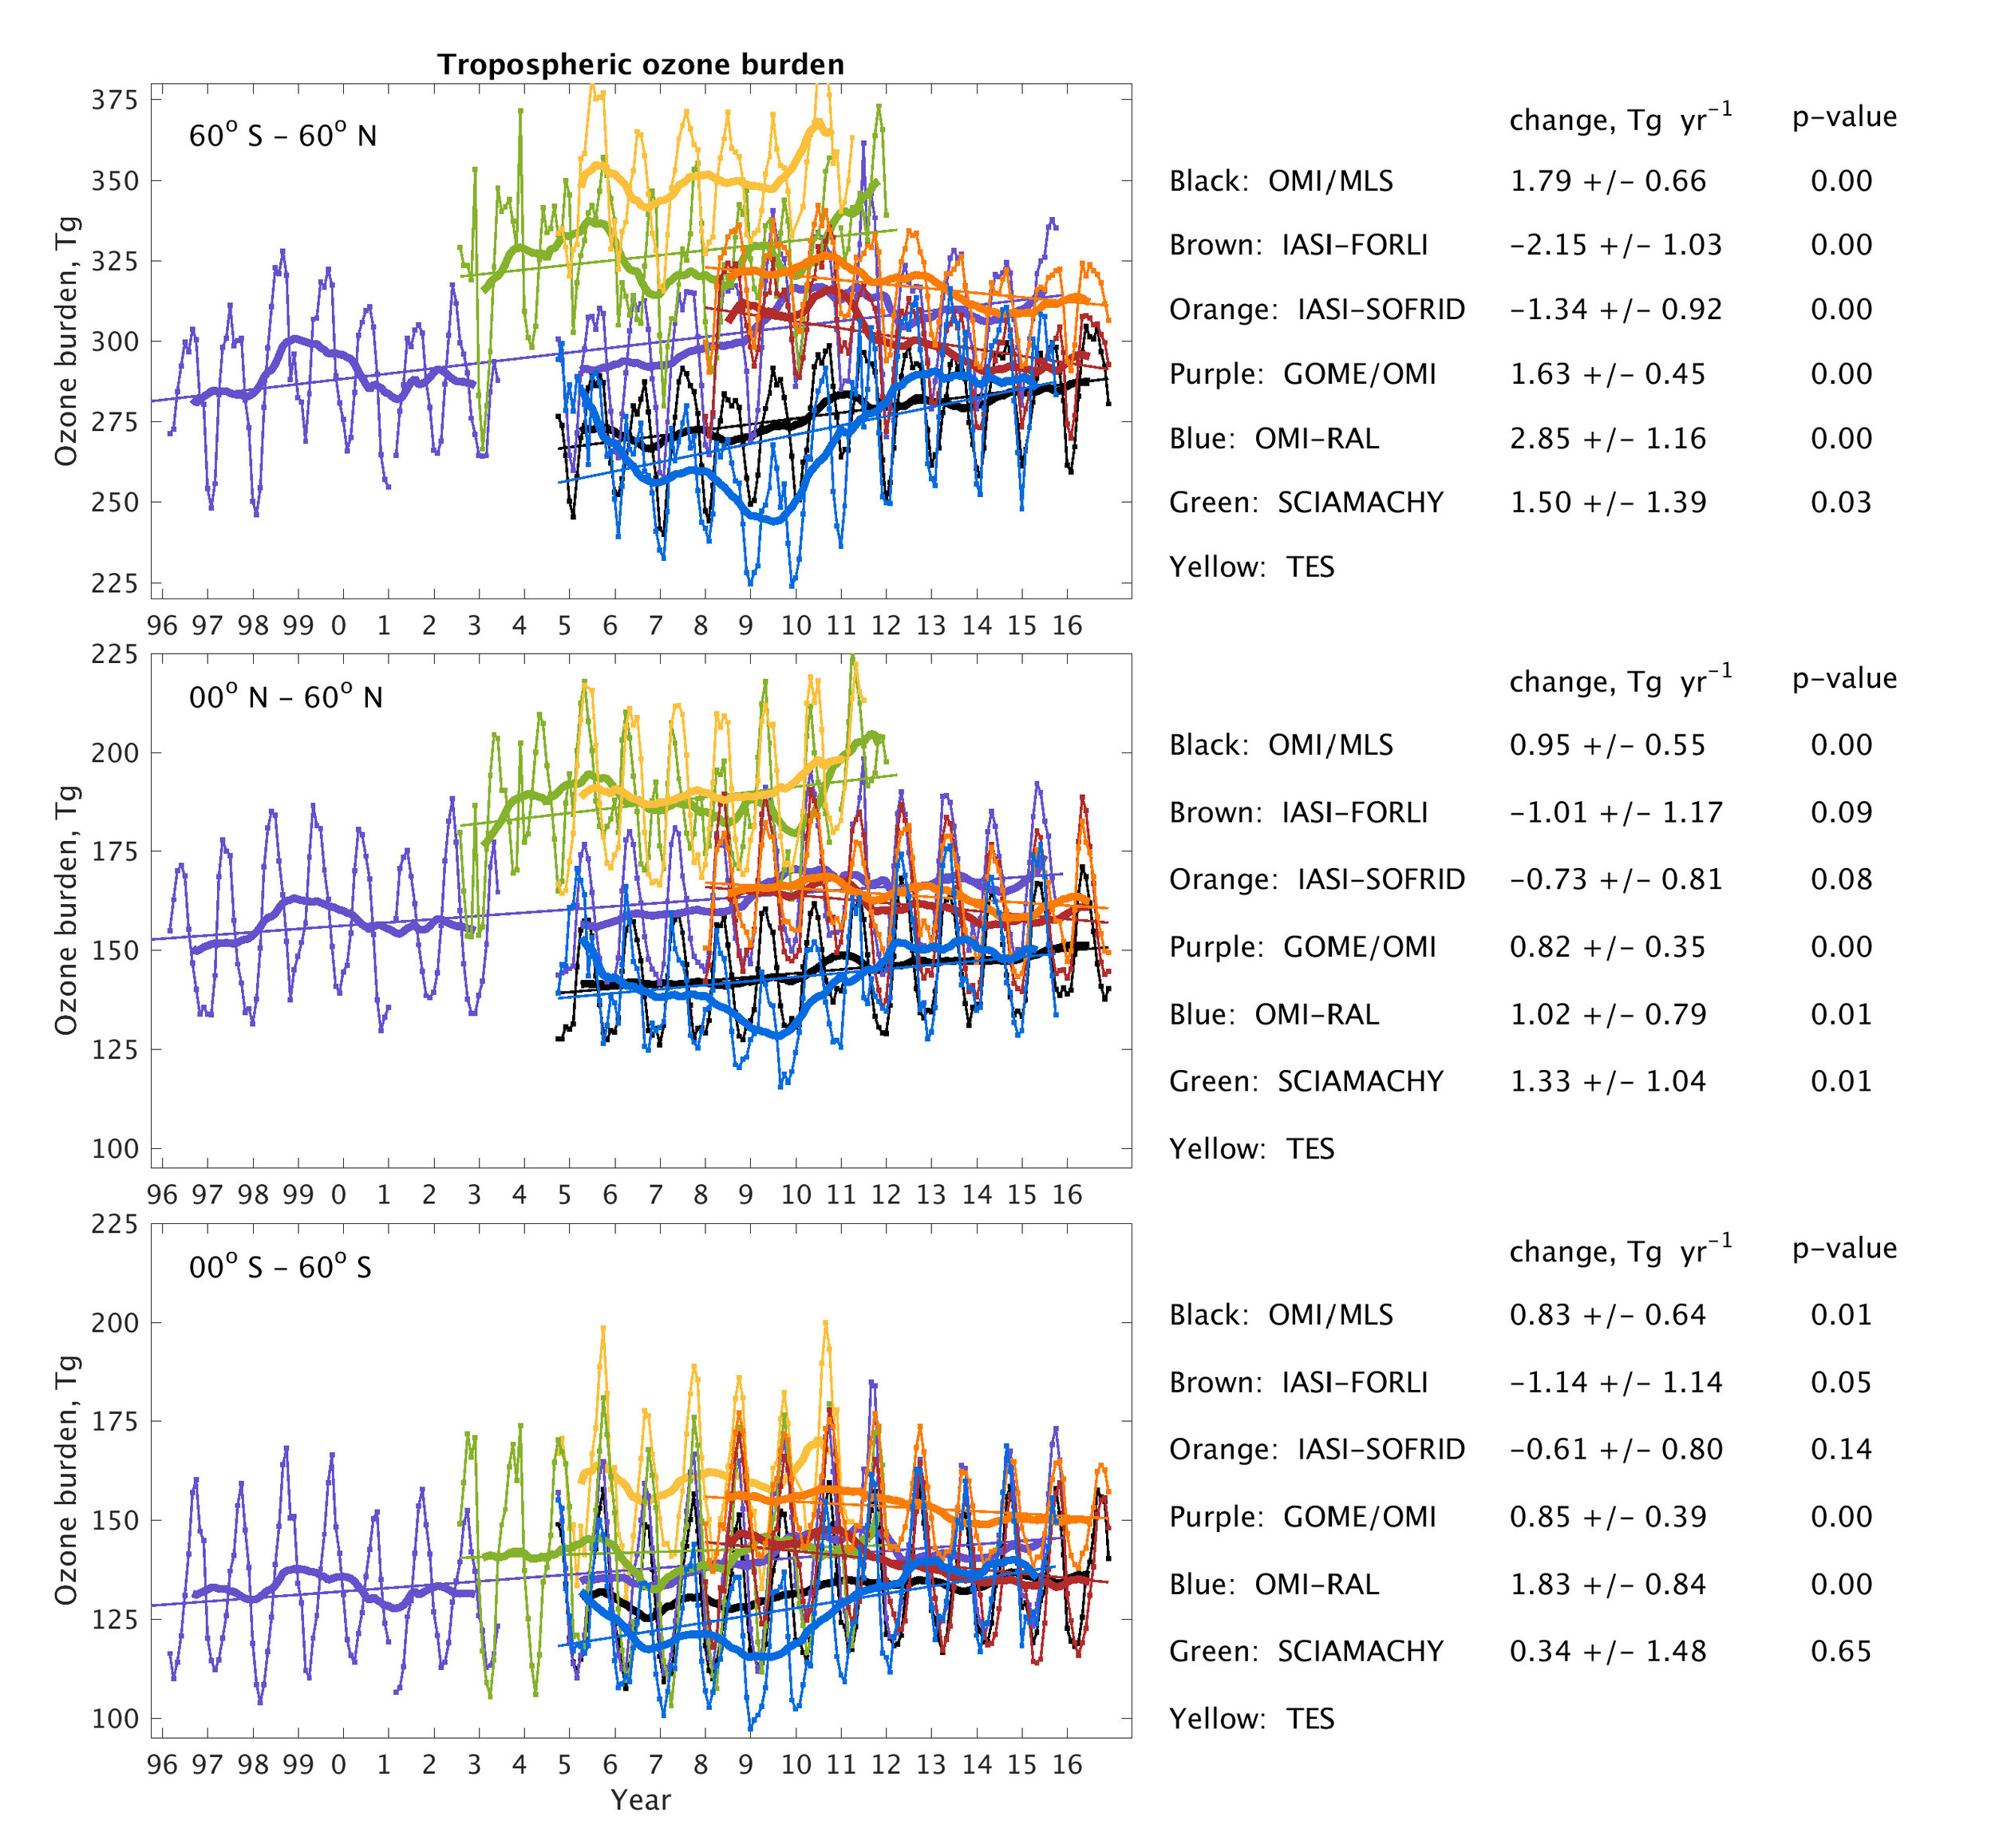 The tropospheric ozone burden as observed by multiple satellite instruments. See TOAR Special Feature article by Gaudel et al., 2018:  https://doi.org/10.1525/elementa.291.f26